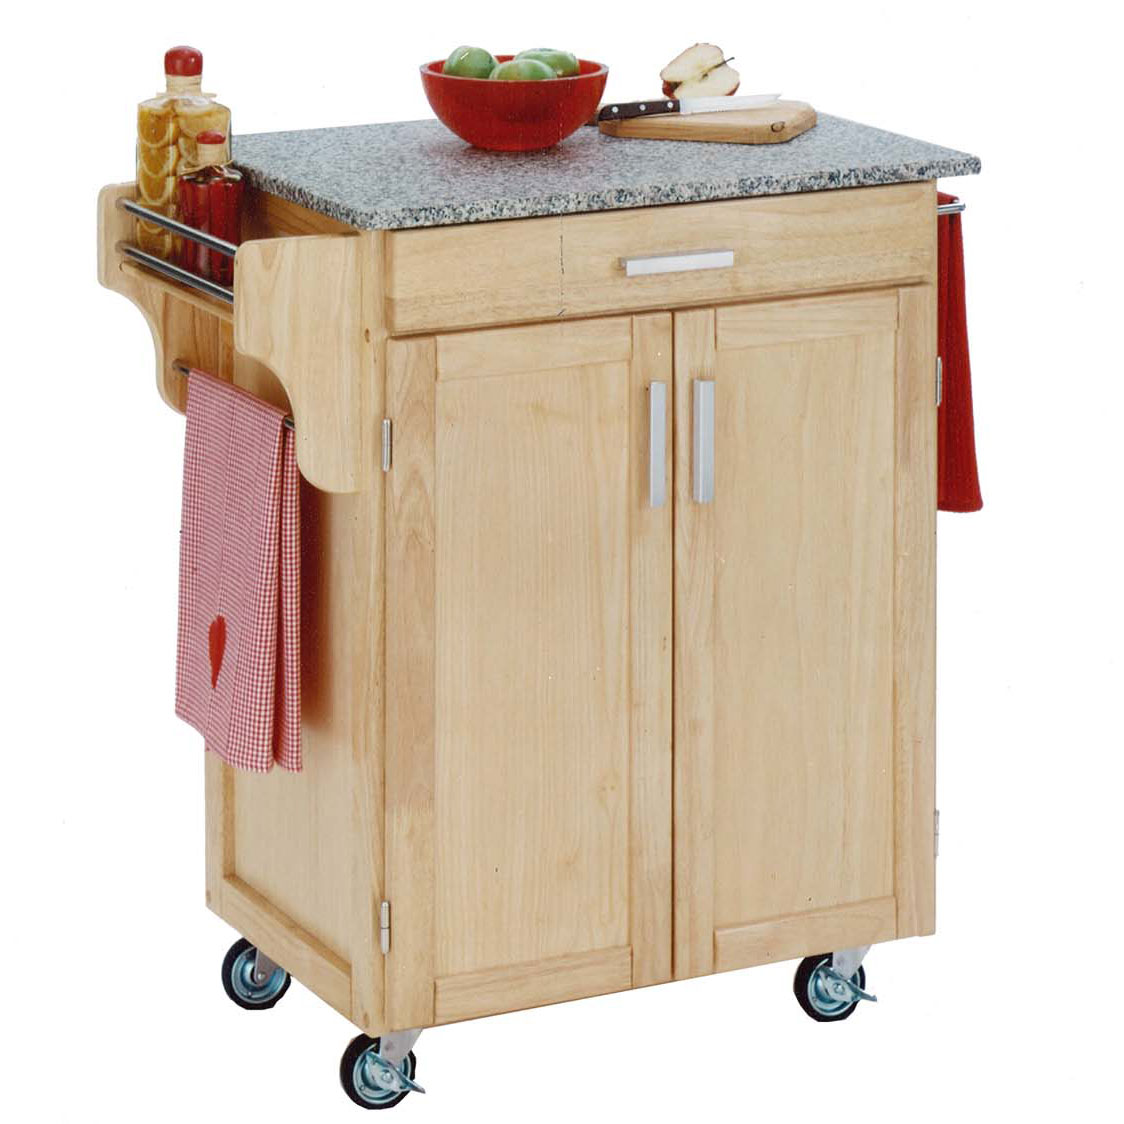 Natural Wood Cuisine Kitchen Cart with Salt & Pepper Granite Top, NATURAL SALT WATER DIVE PEPPER